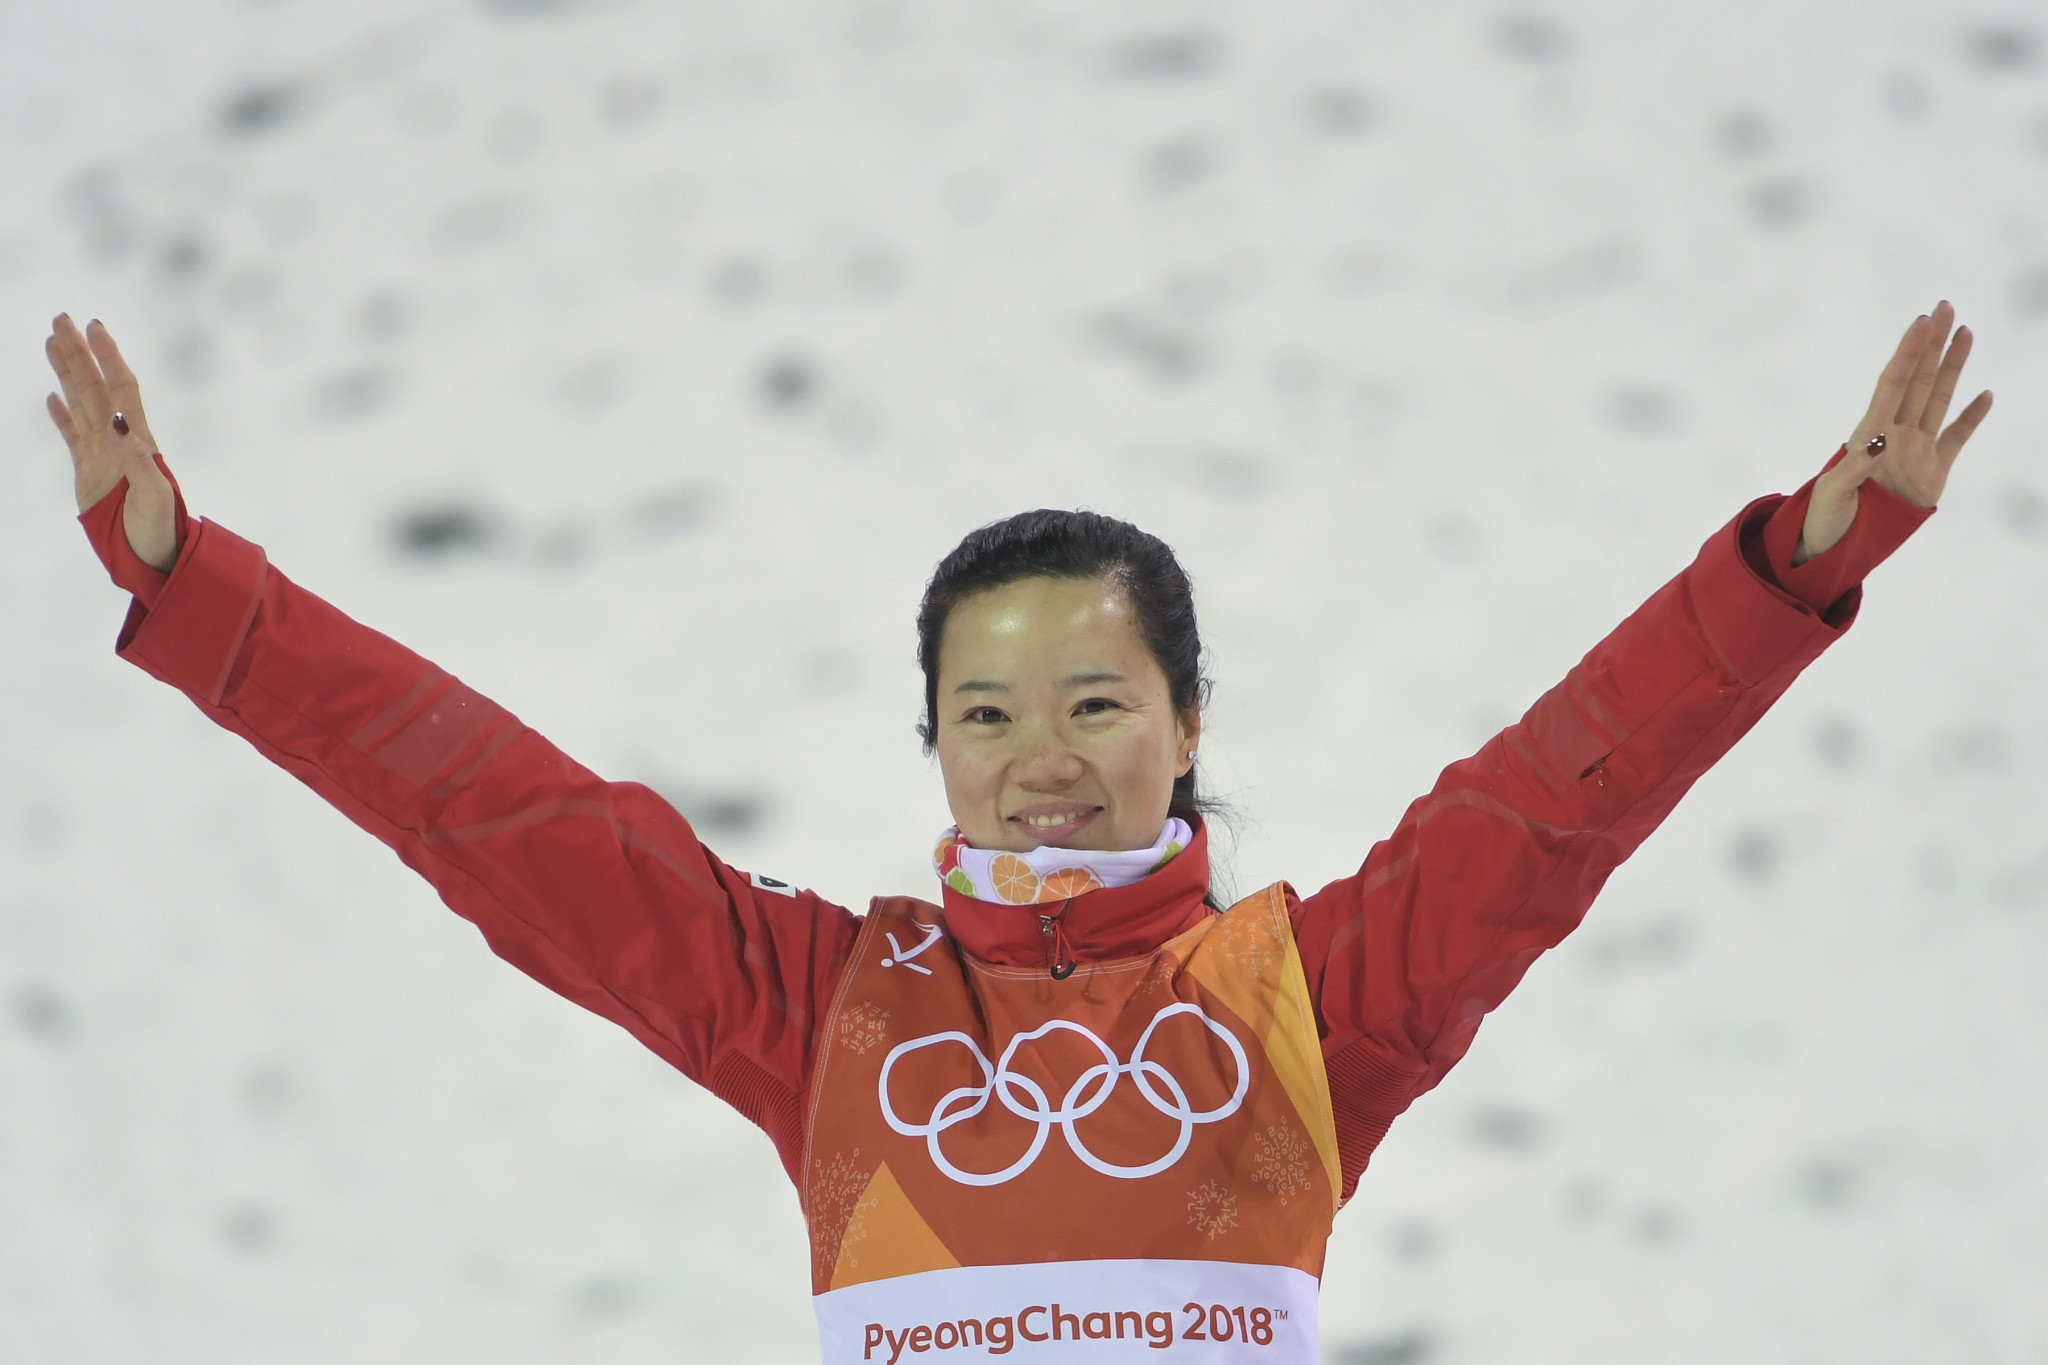 Zhang Xin of China finished in second place ©Getty Images